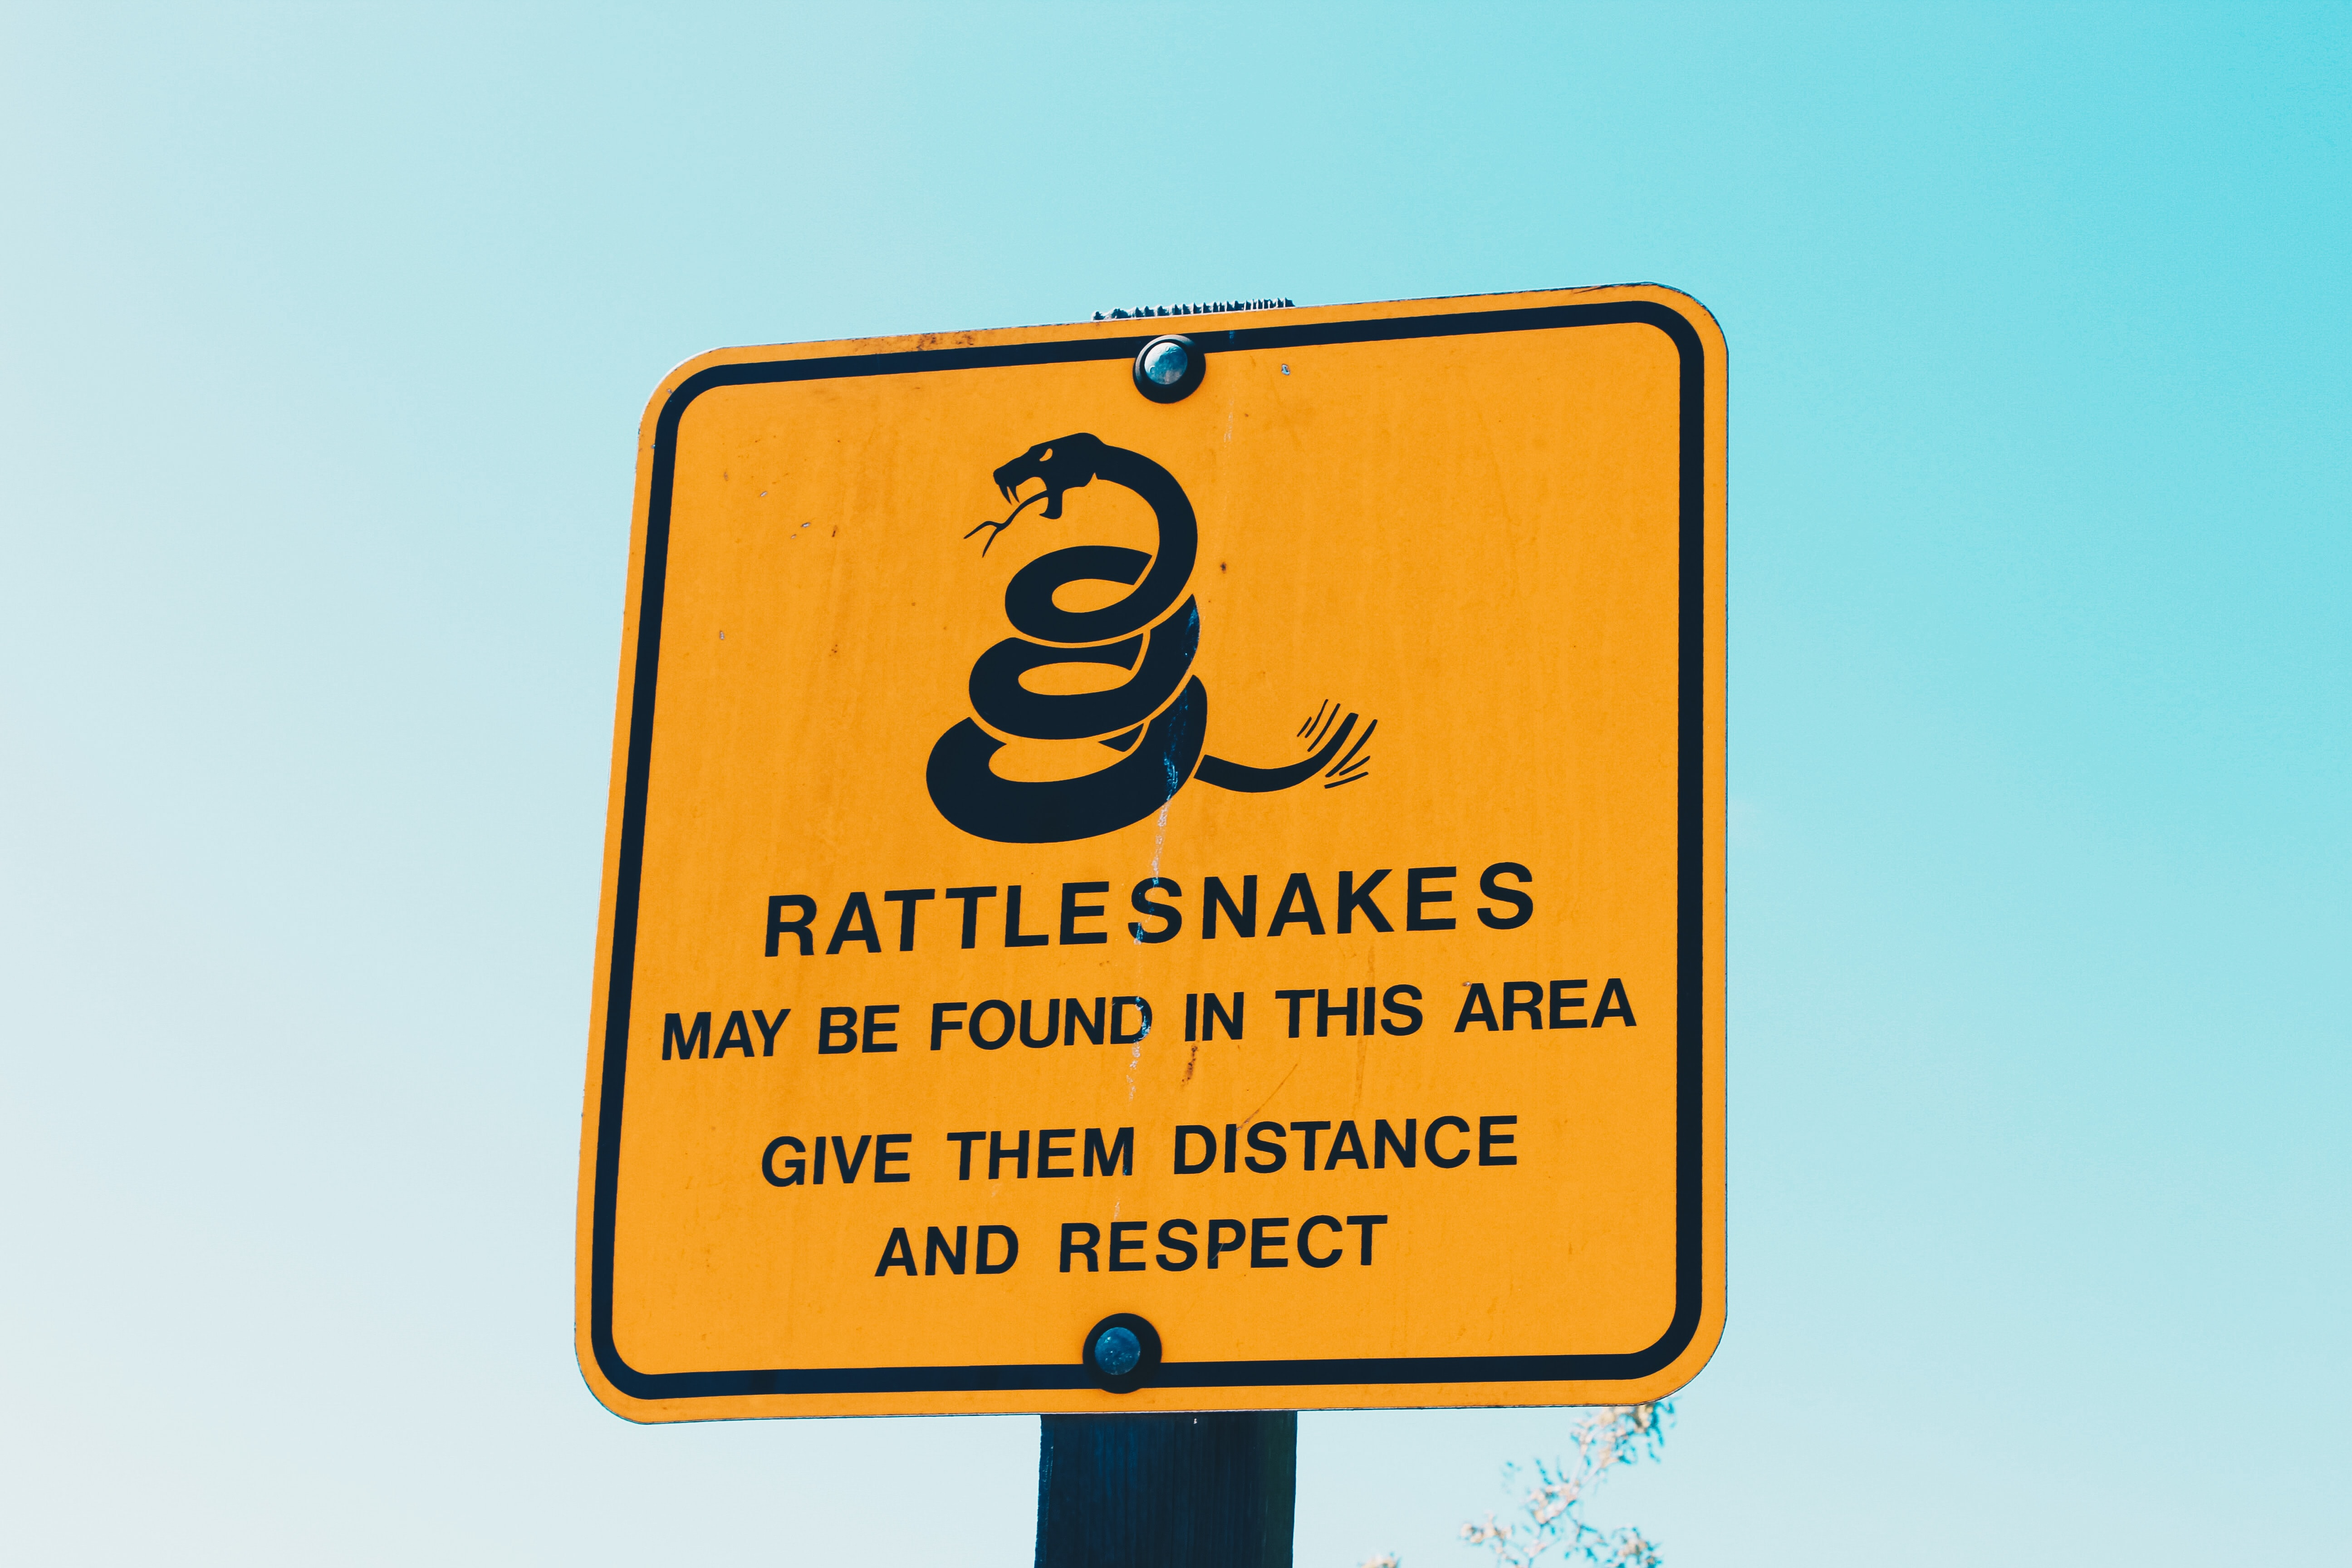 Rattlesnakes may be found in this area give them distance and respect signage